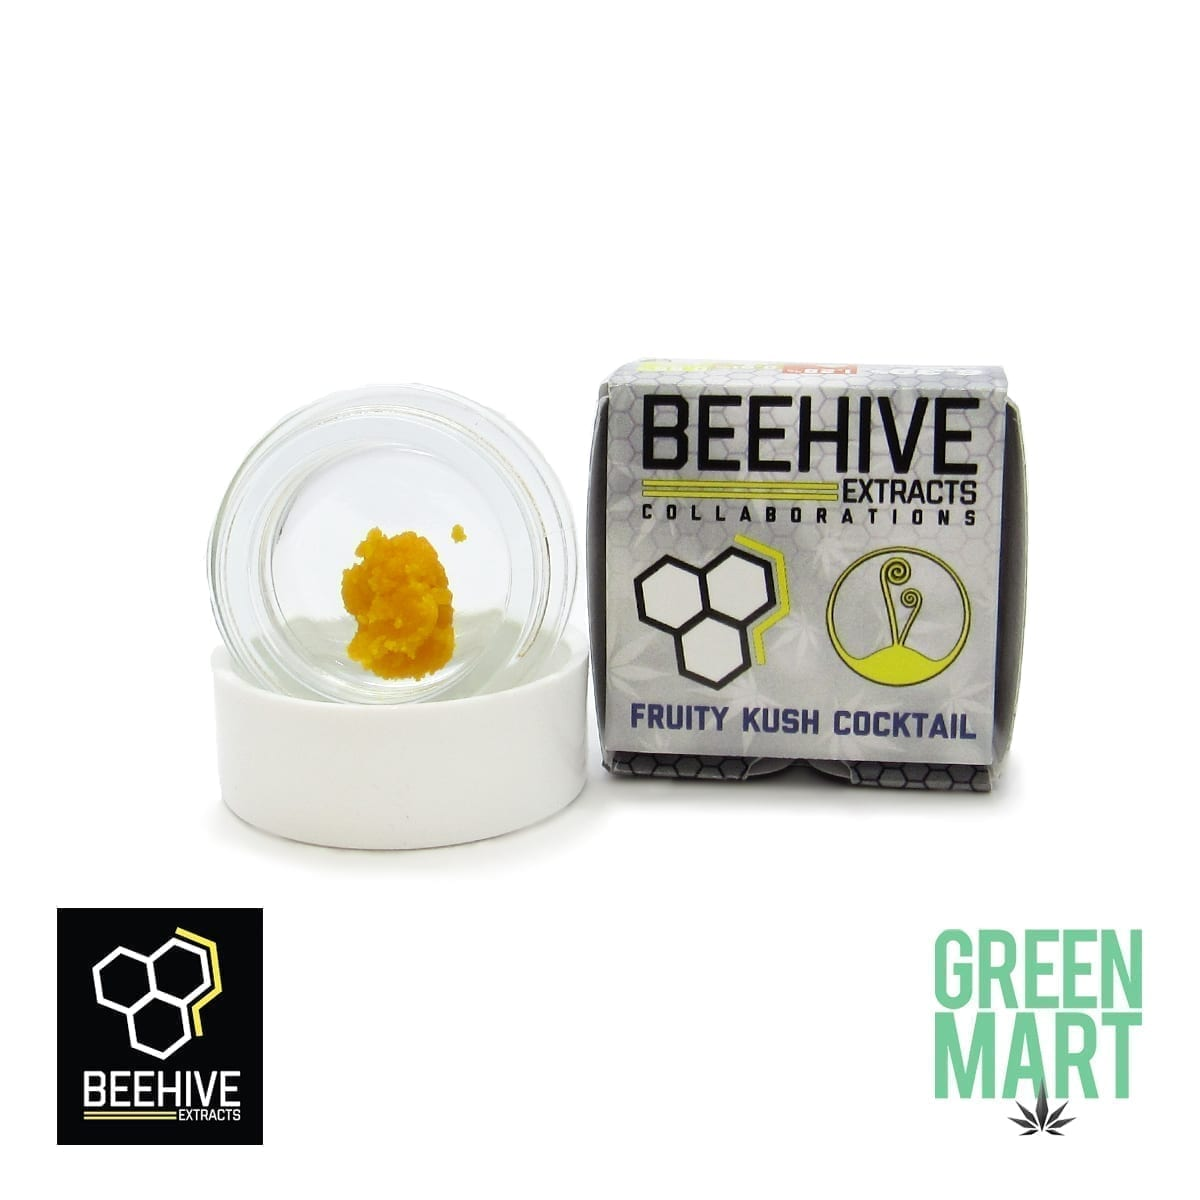 Bee Hive Extracts - Fruity Kush Cocktail